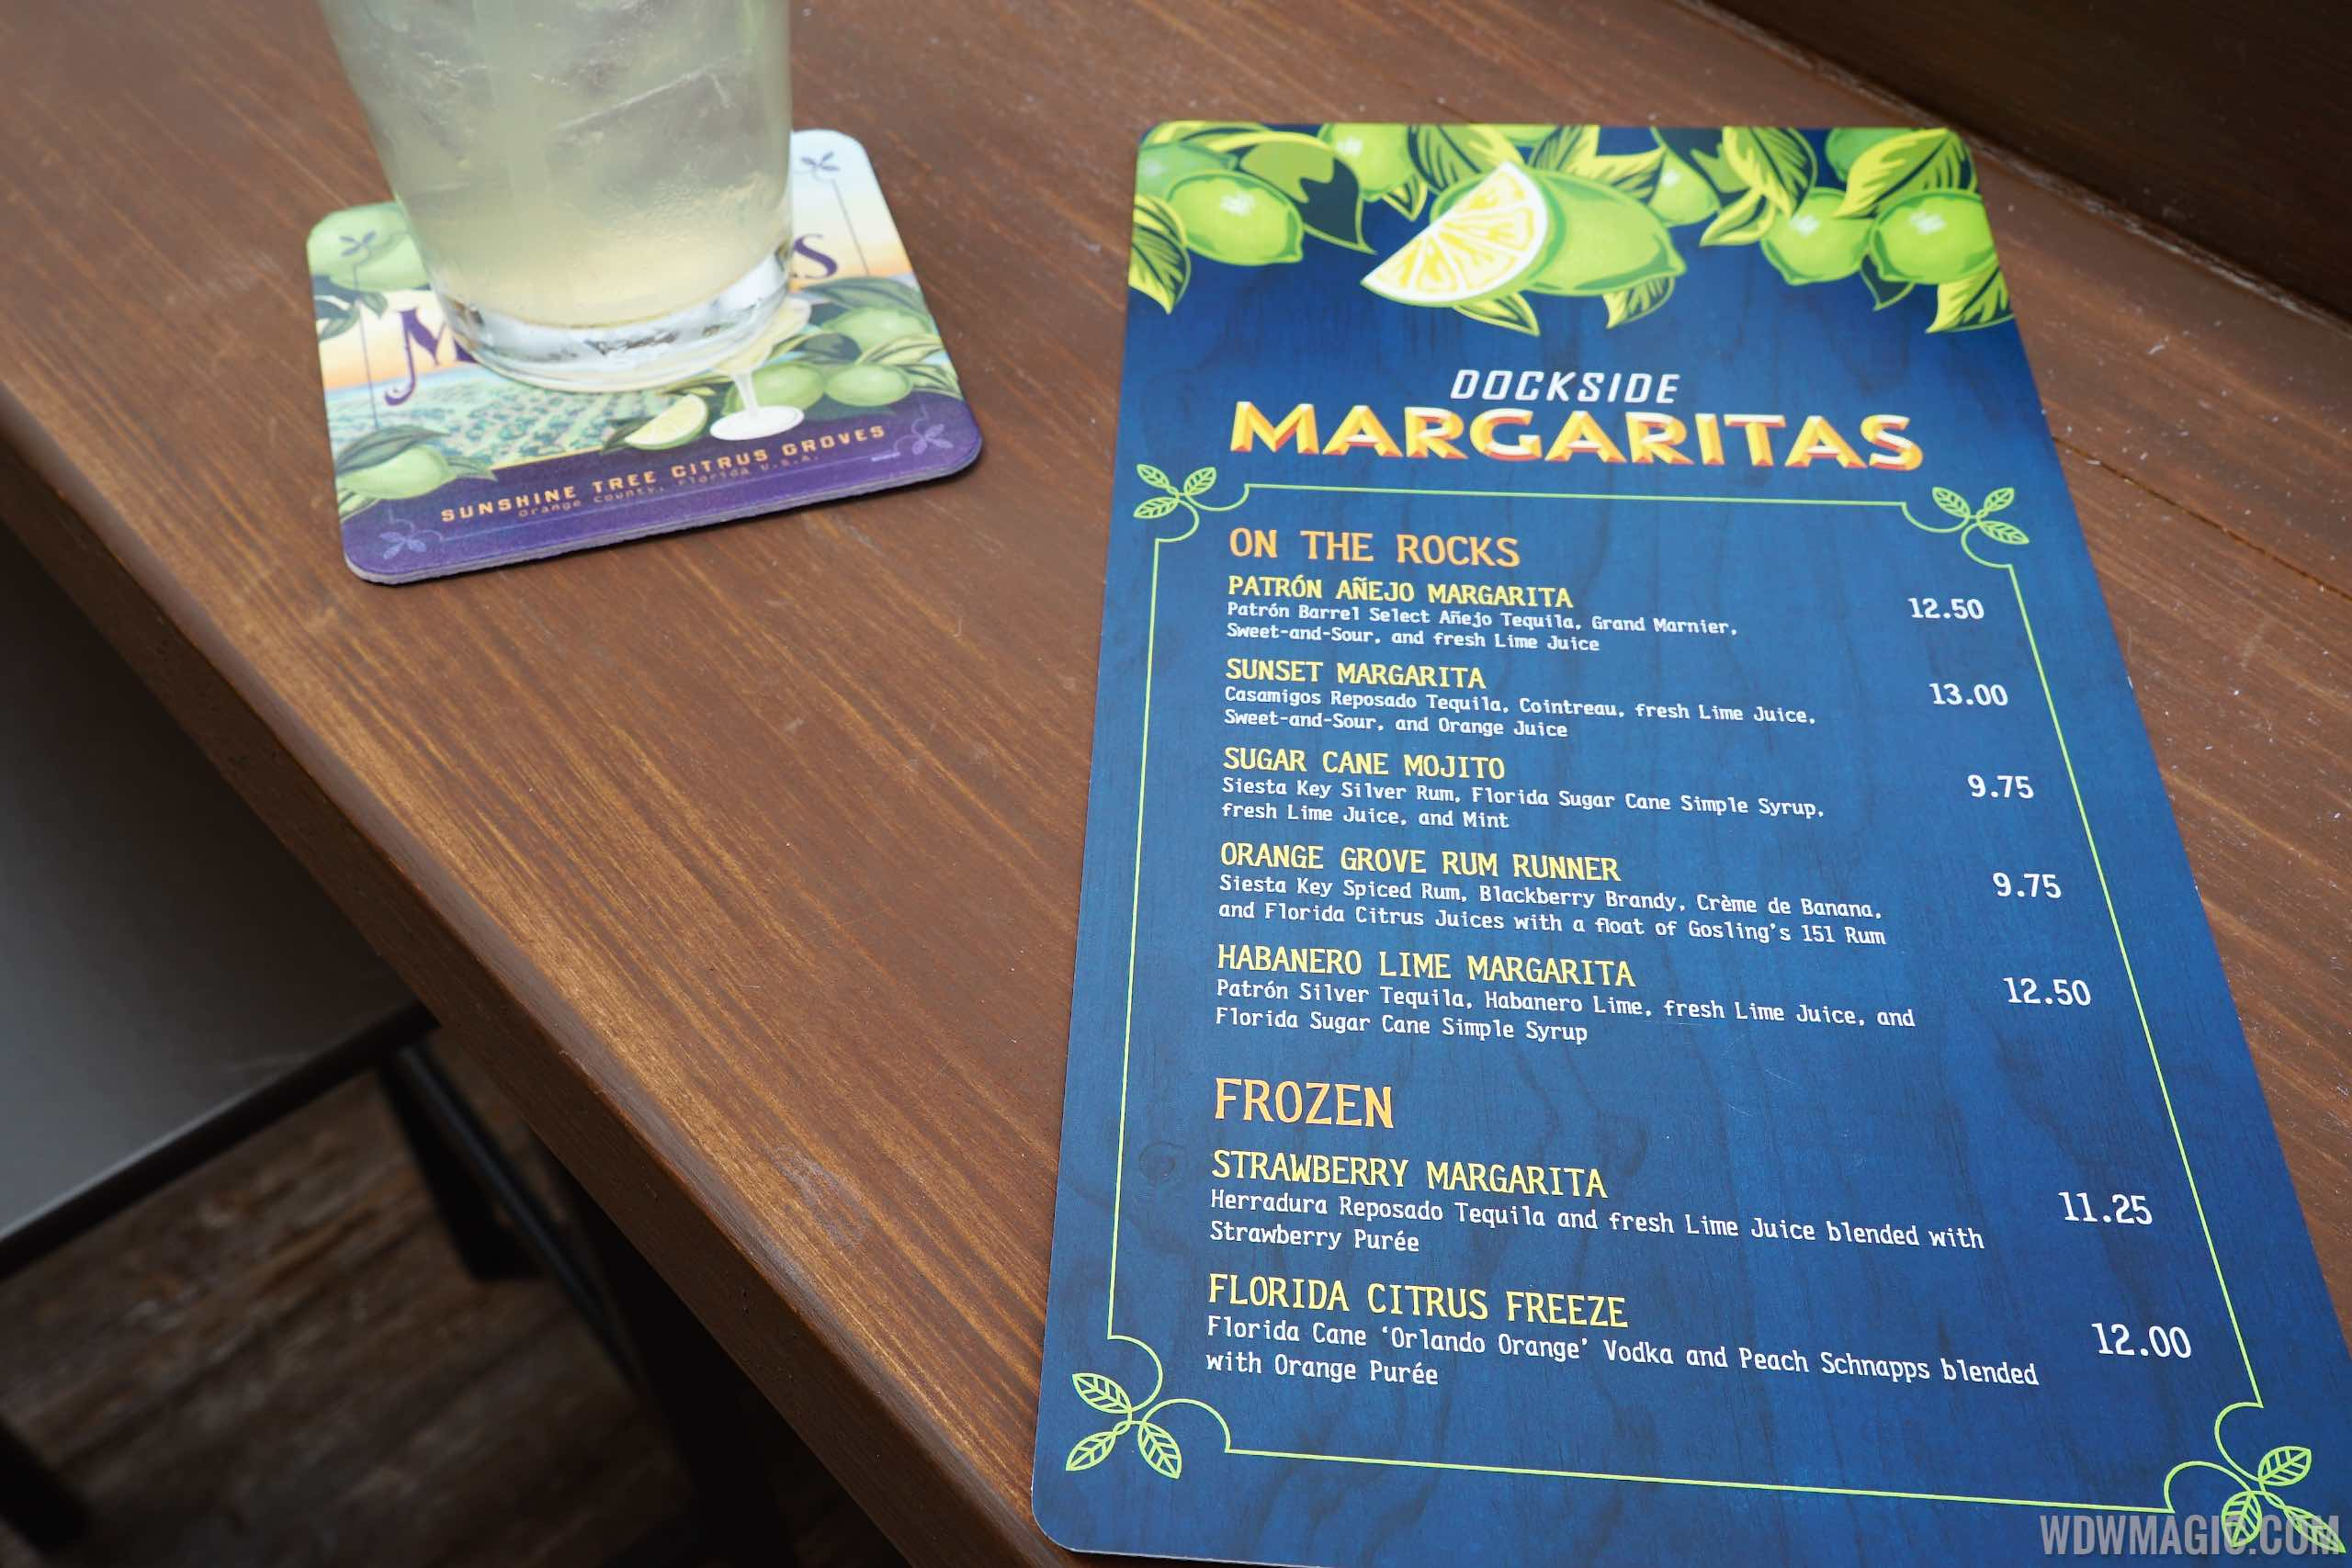 Dockside Margaritas - Menu